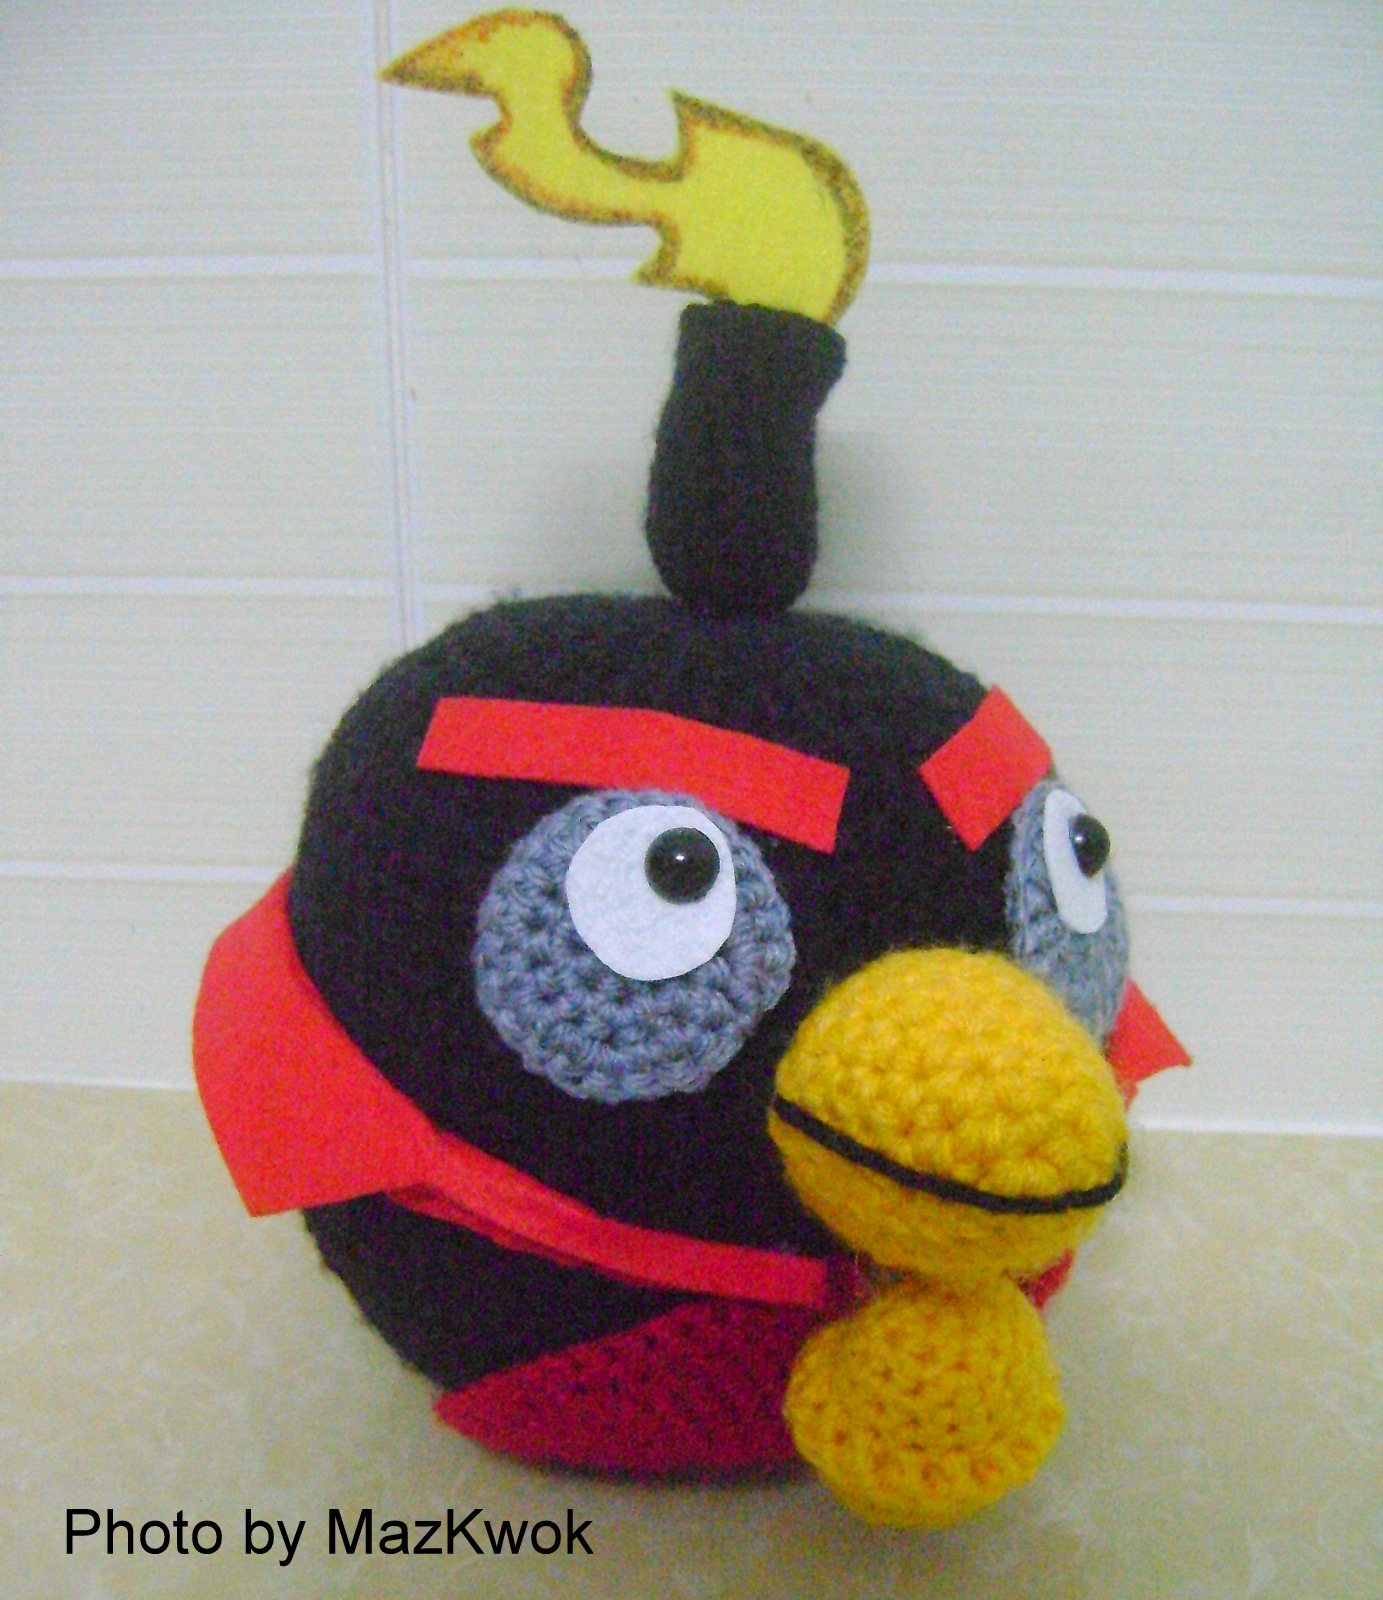 Black Angry Bird Amigurumi Pattern : Be A Crafter xD: Angry bird space version - Black bird ...